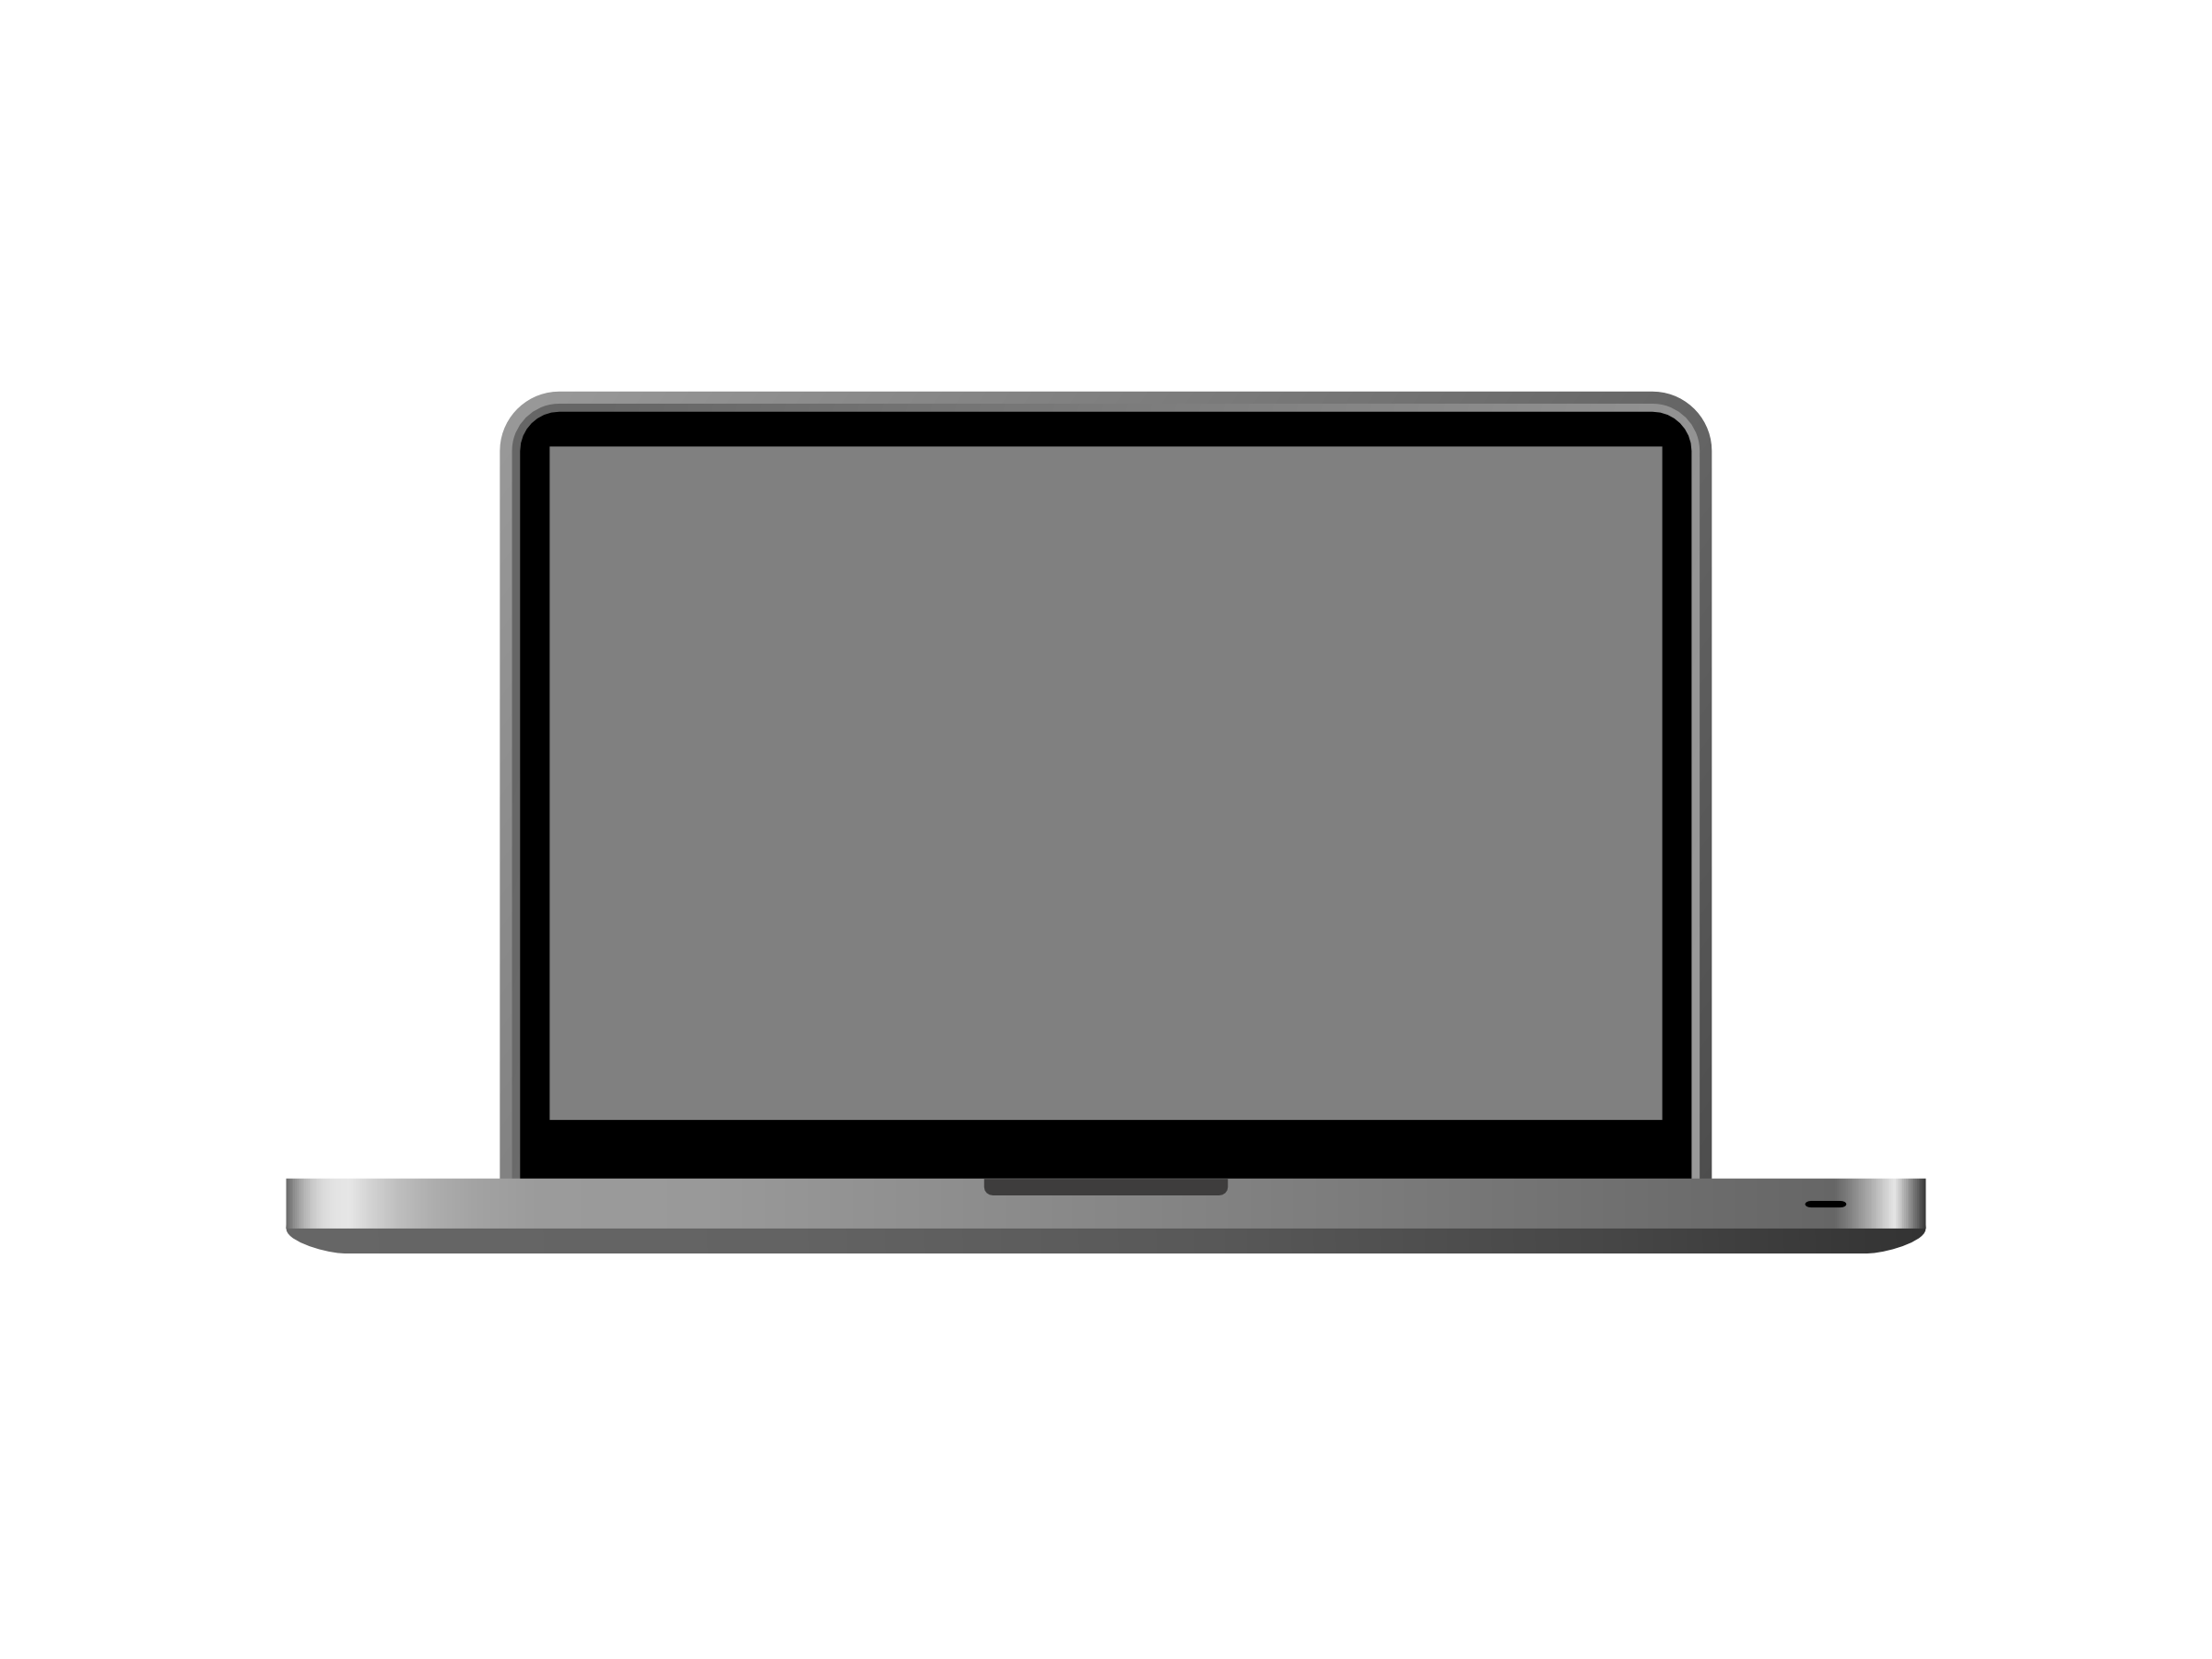 Mac Laptop Clipart.